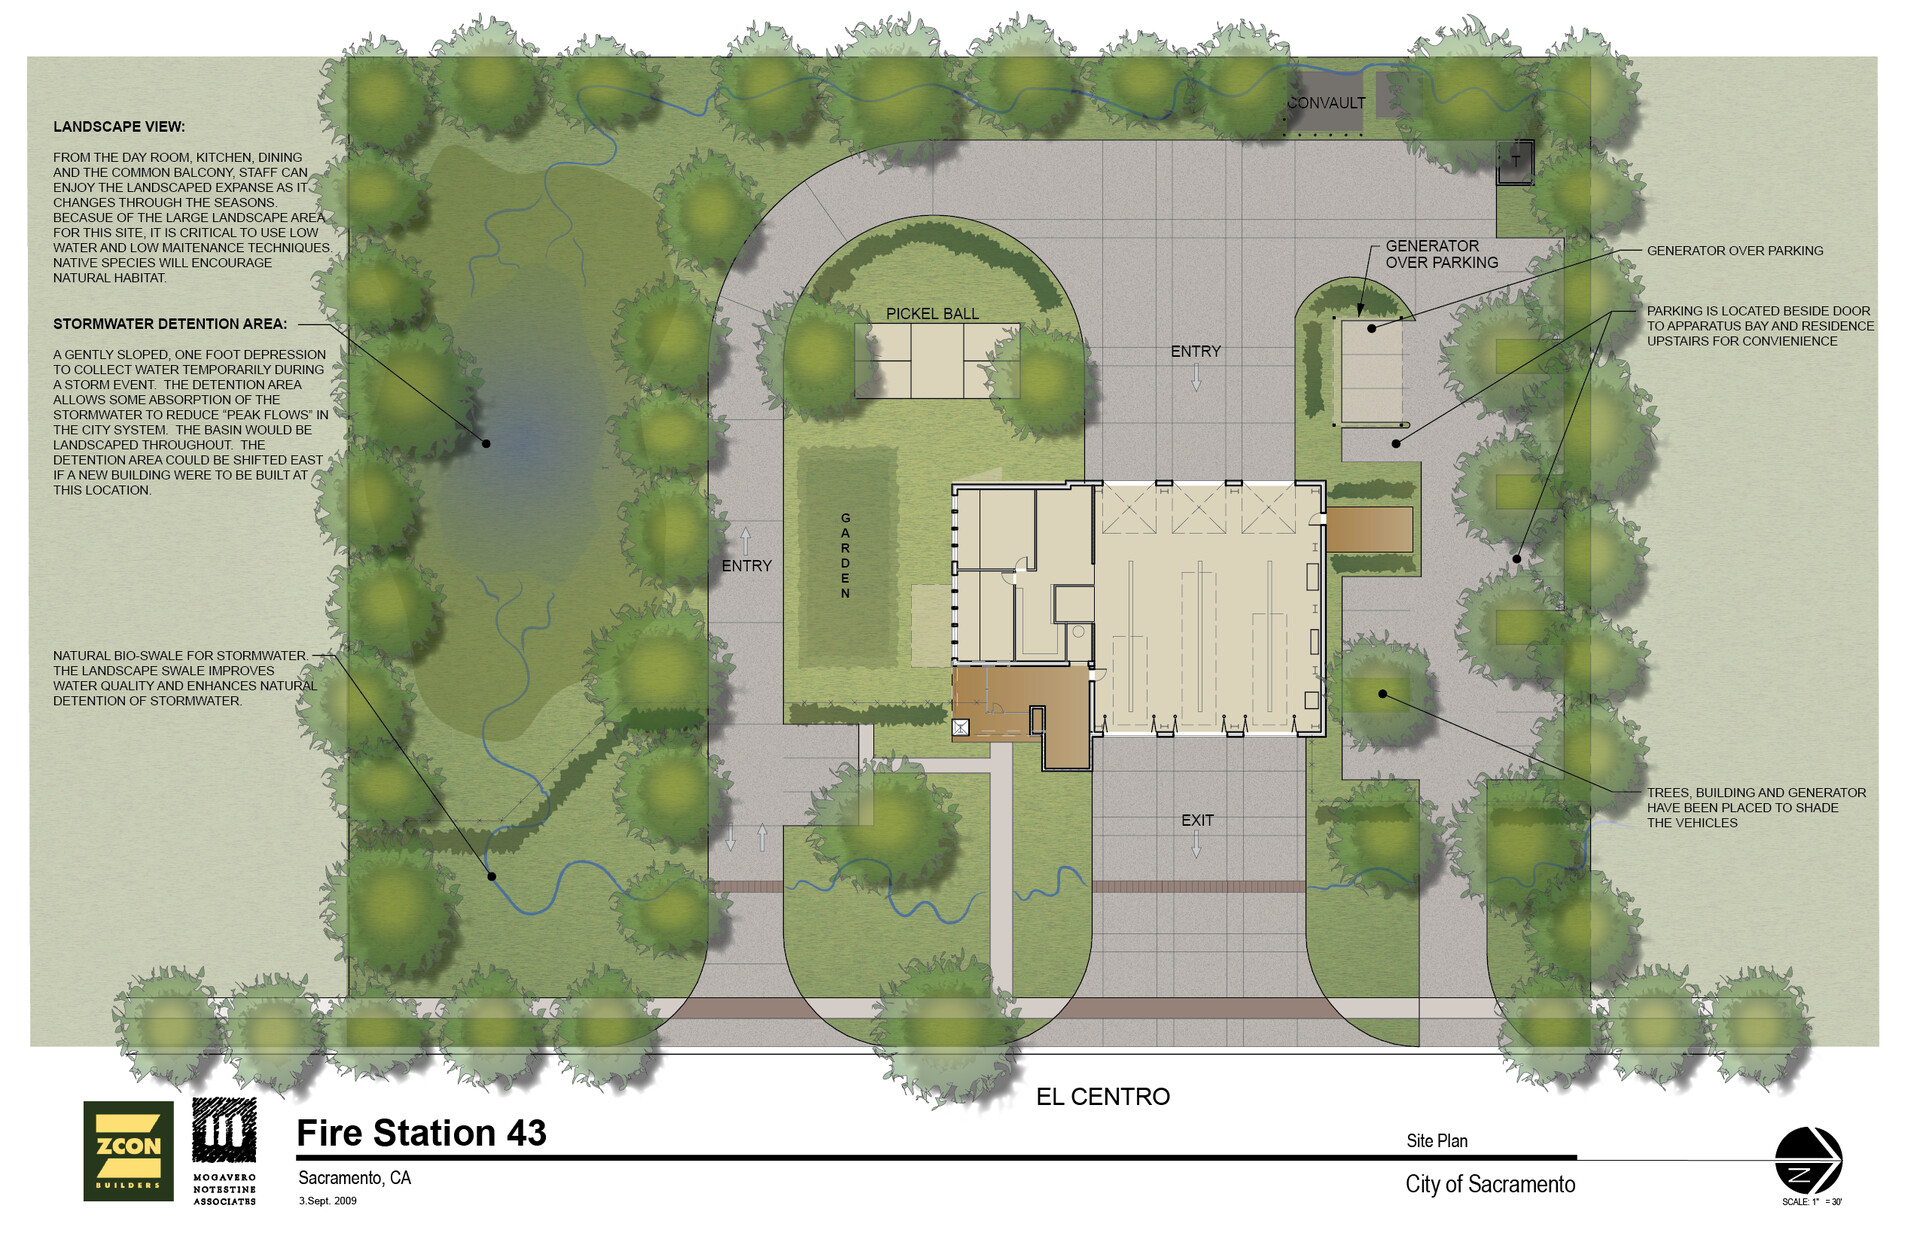 Gerard falla firestation 43 site plan 01 01